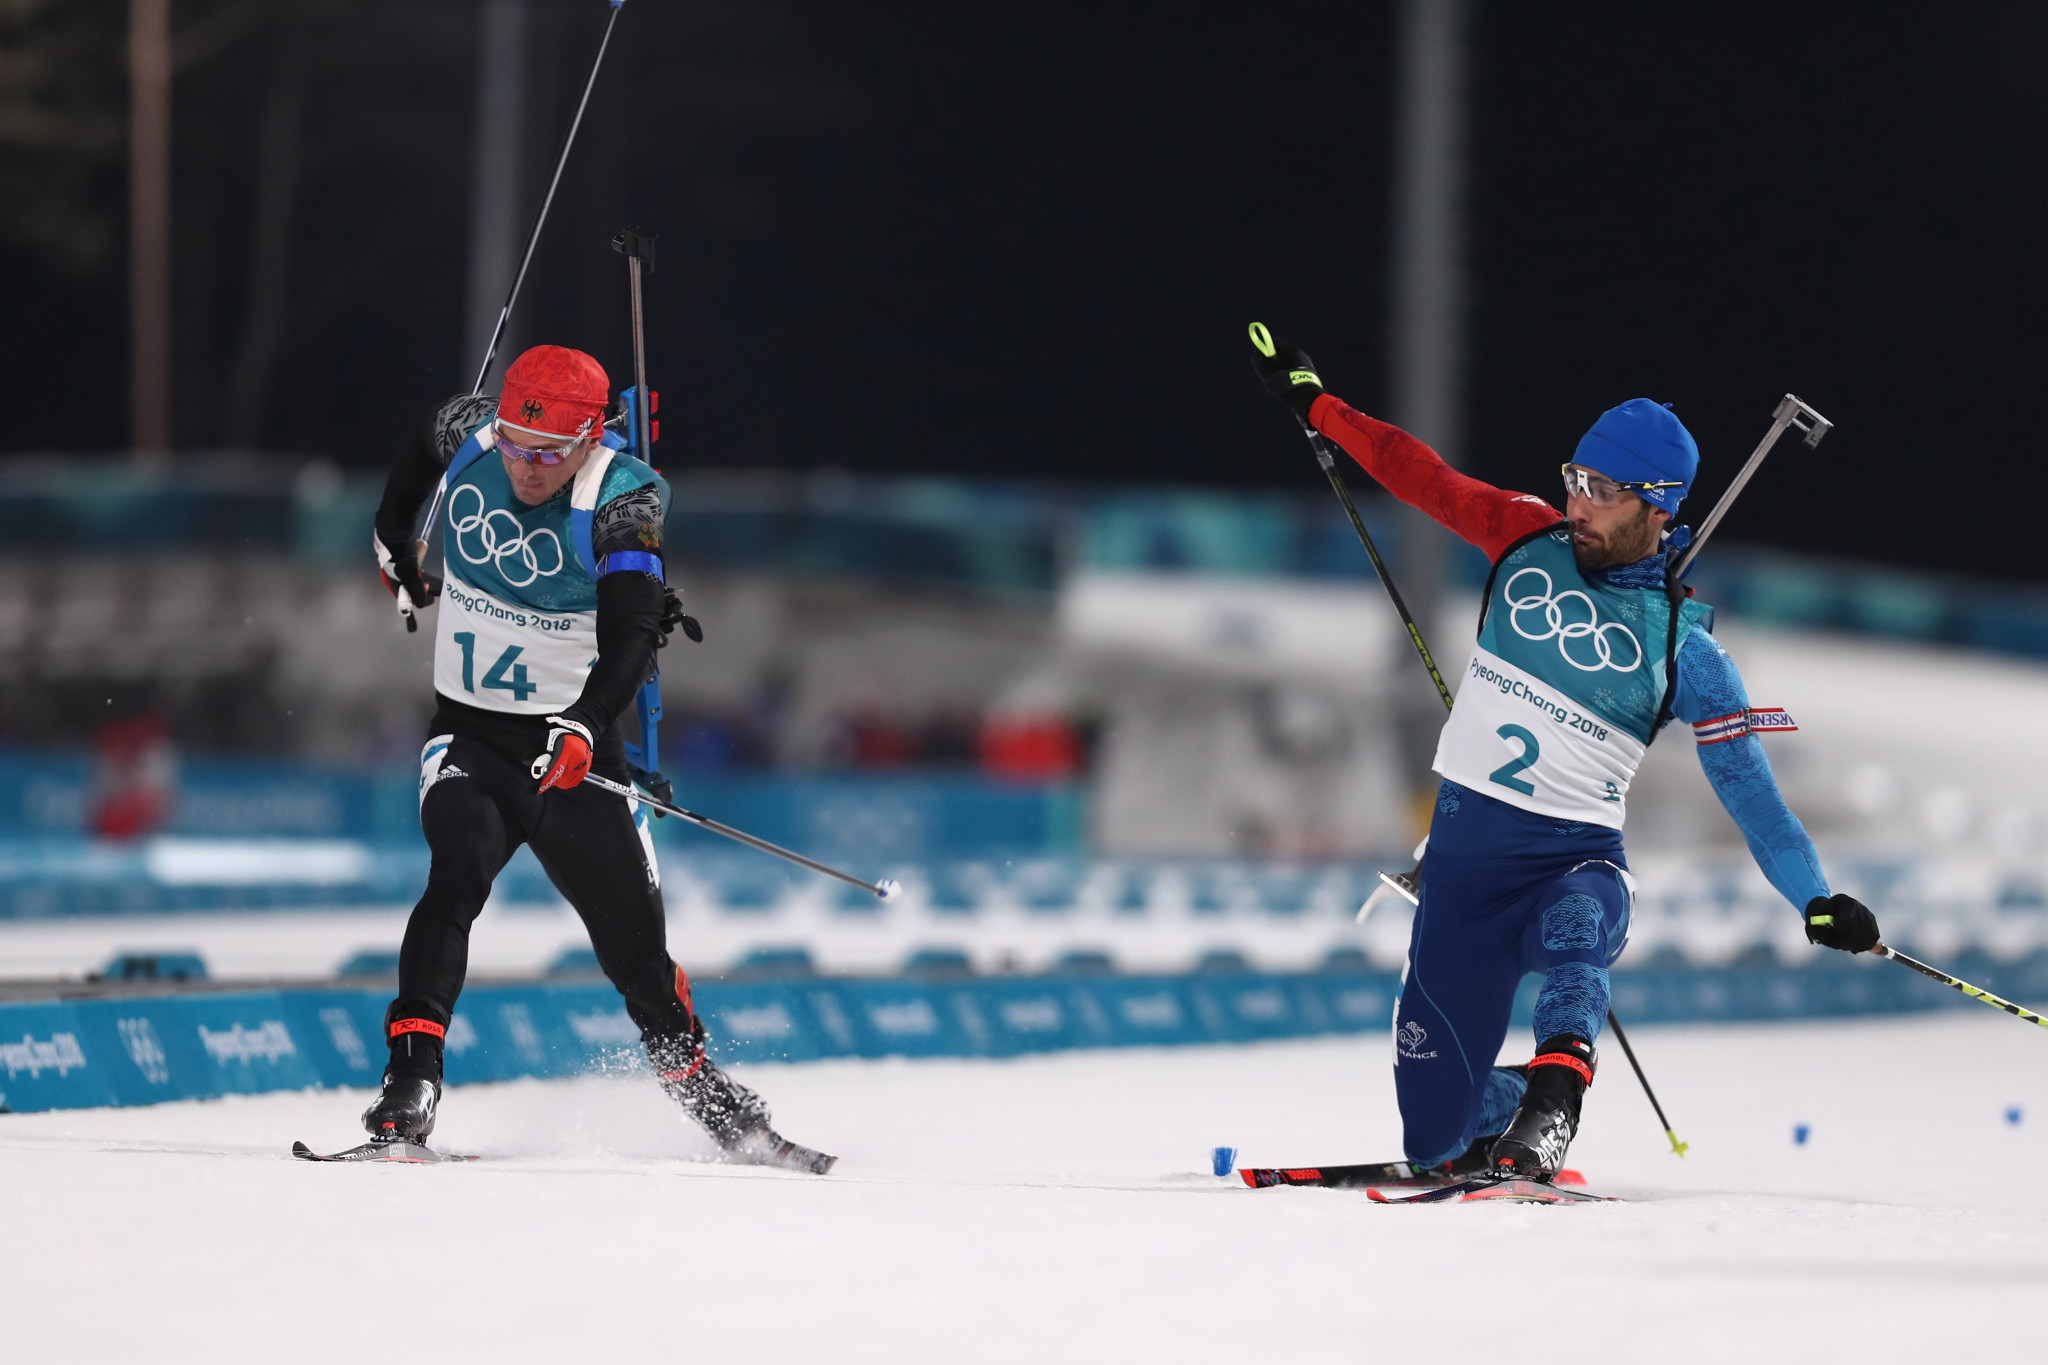 Fourcade edges Schempp in photo finish to become France's most successful ever Olympic athlete